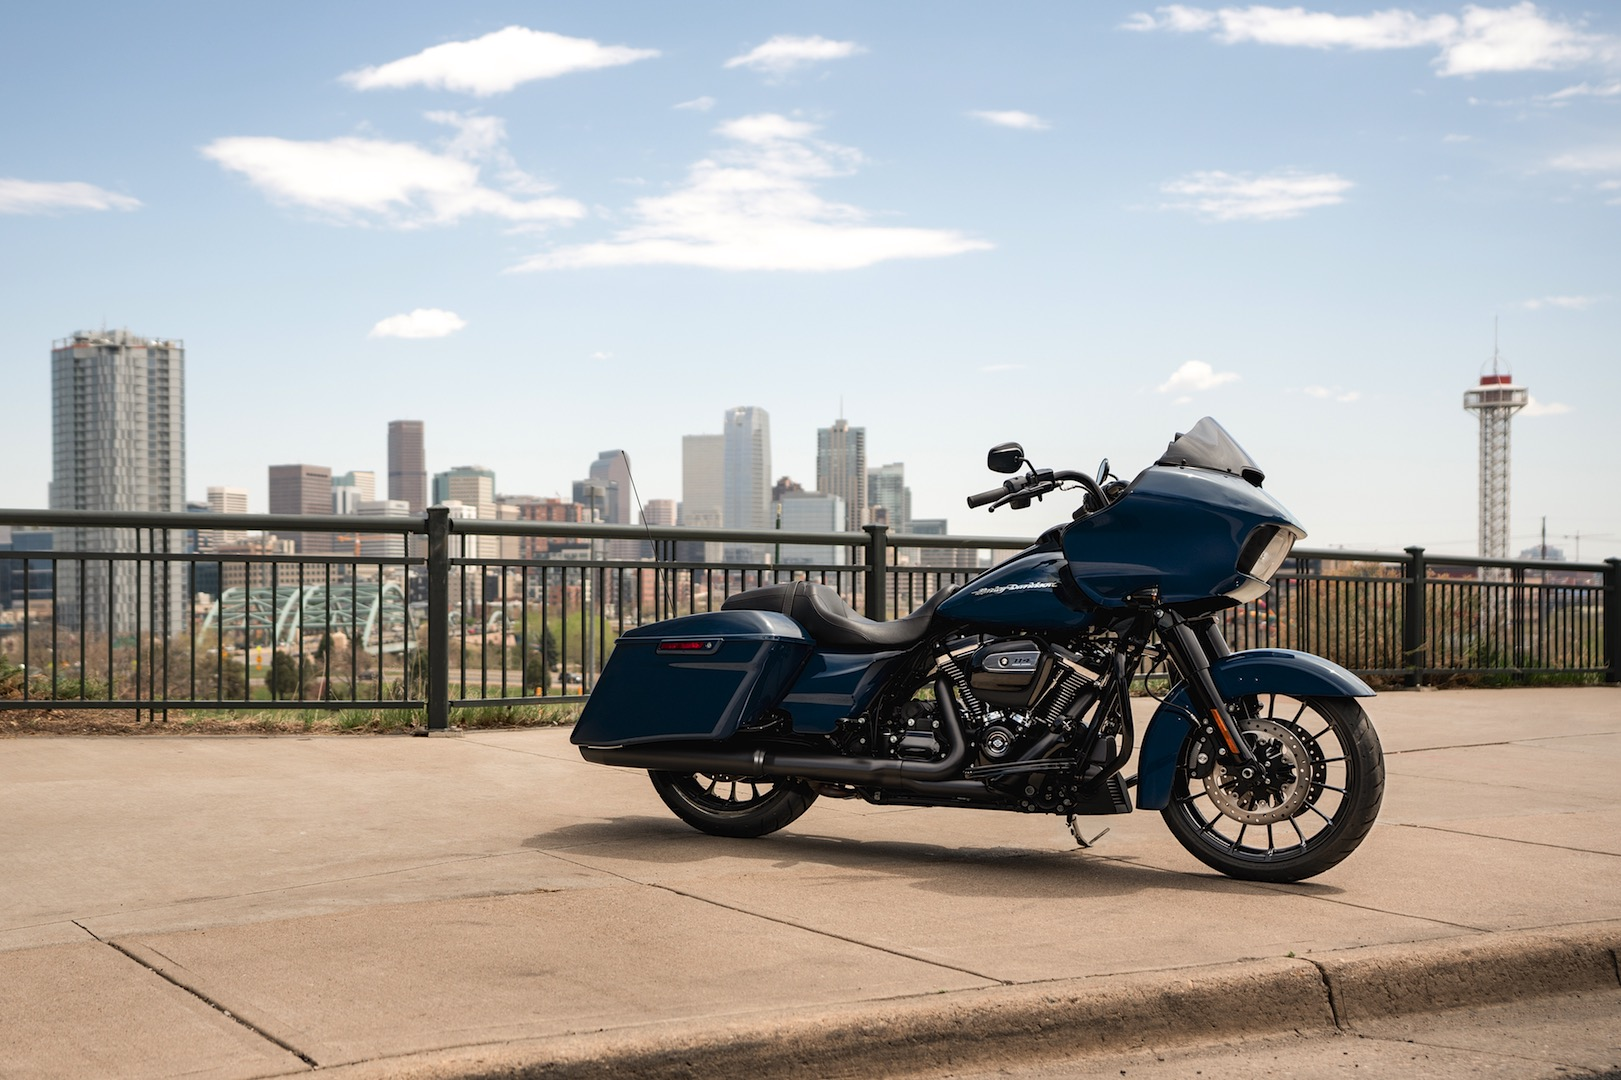 2019 harley davidson road glide special review (15 fast facts) 2006 jeep fuse  box